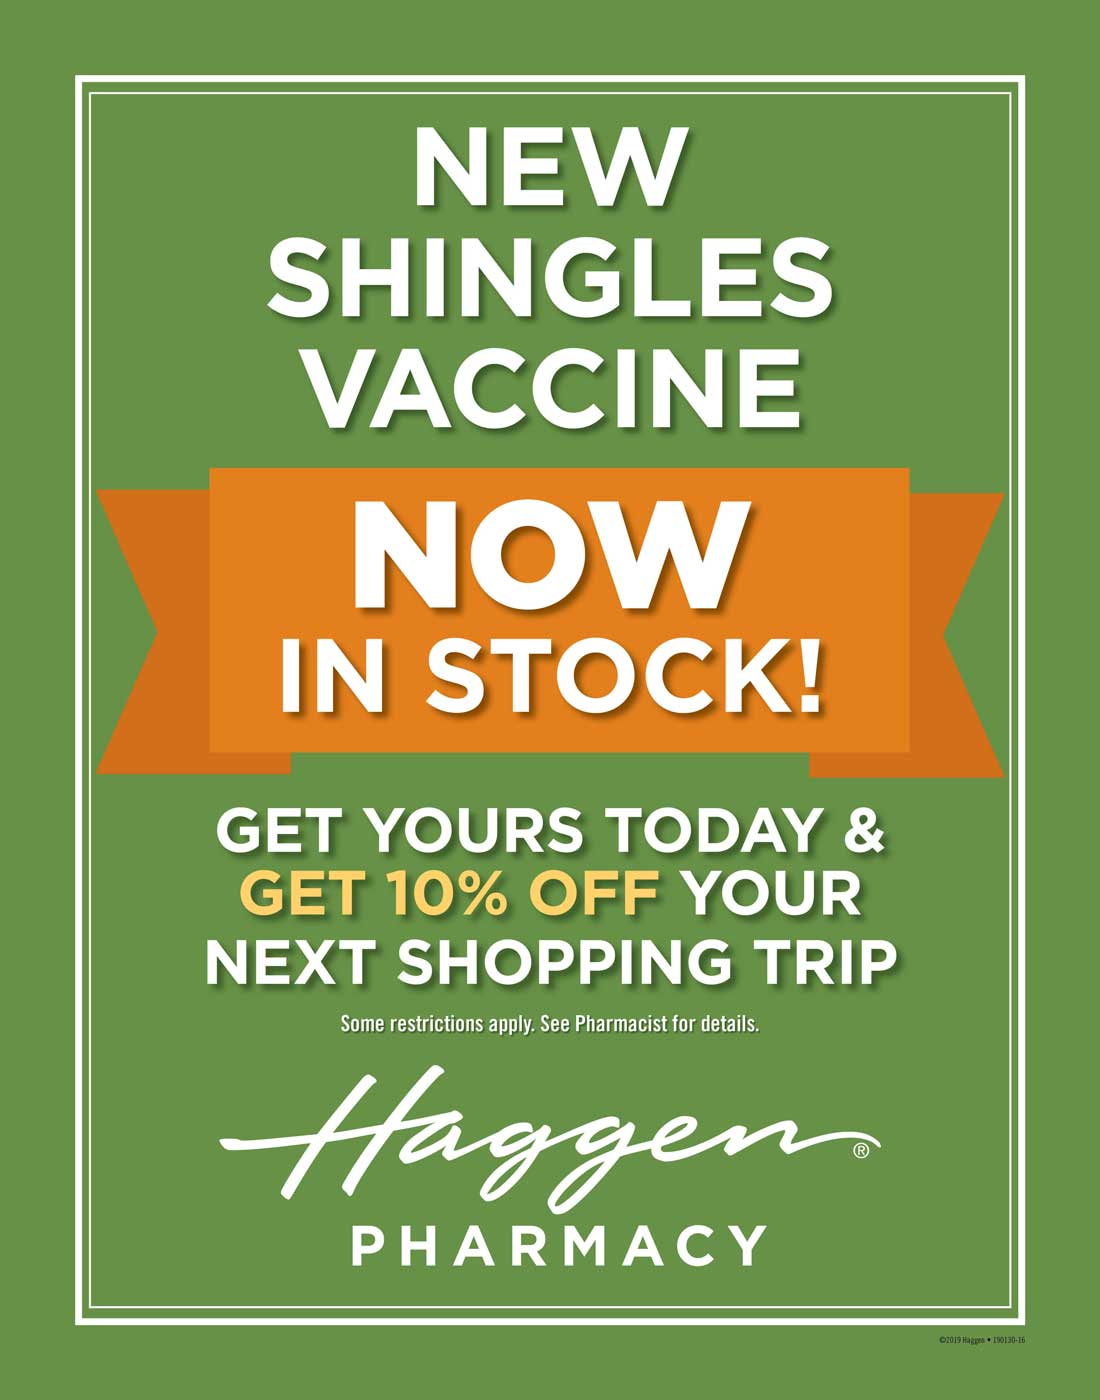 Get your Shingles Vaccine and save 10% on your groceries. See your Pharmacy for details.